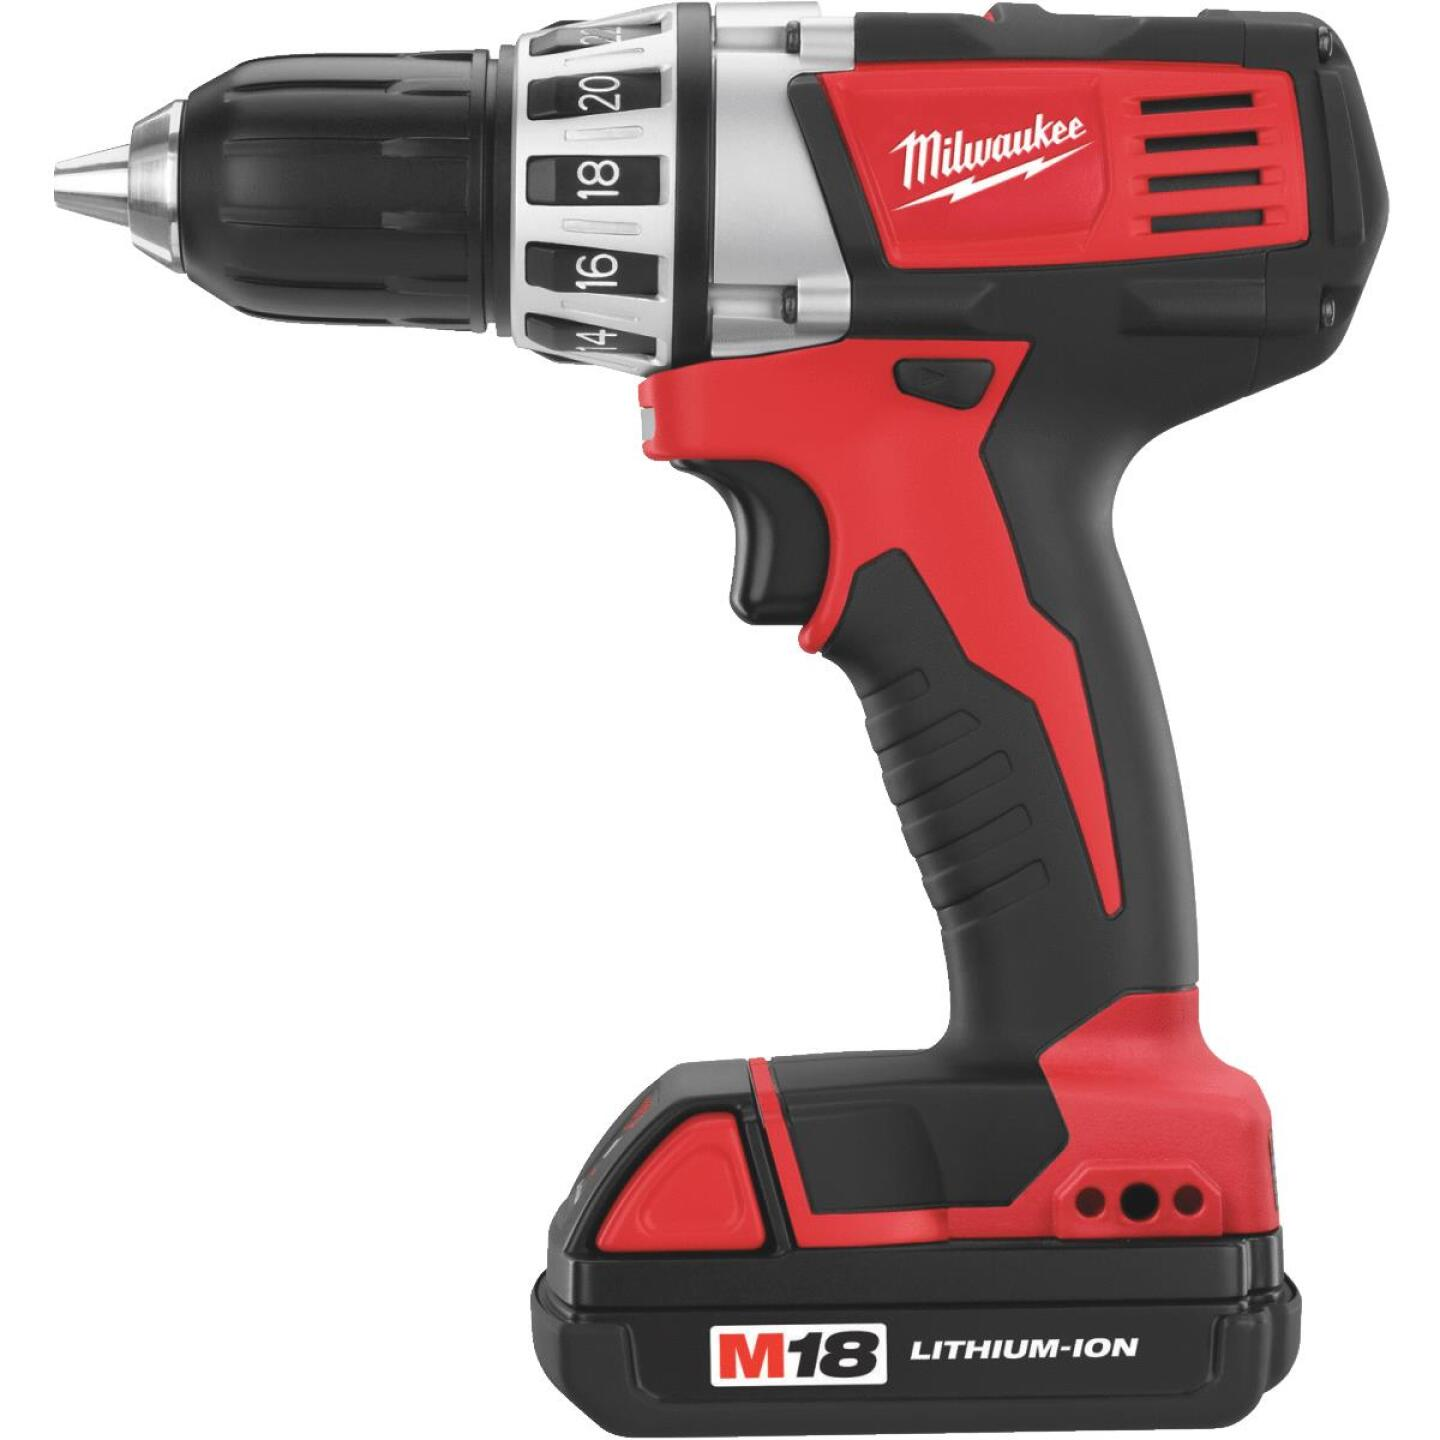 Milwaukee M18 18 Volt Lithium-Ion 1/2 In. Compact Cordless Drill Kit Image 10